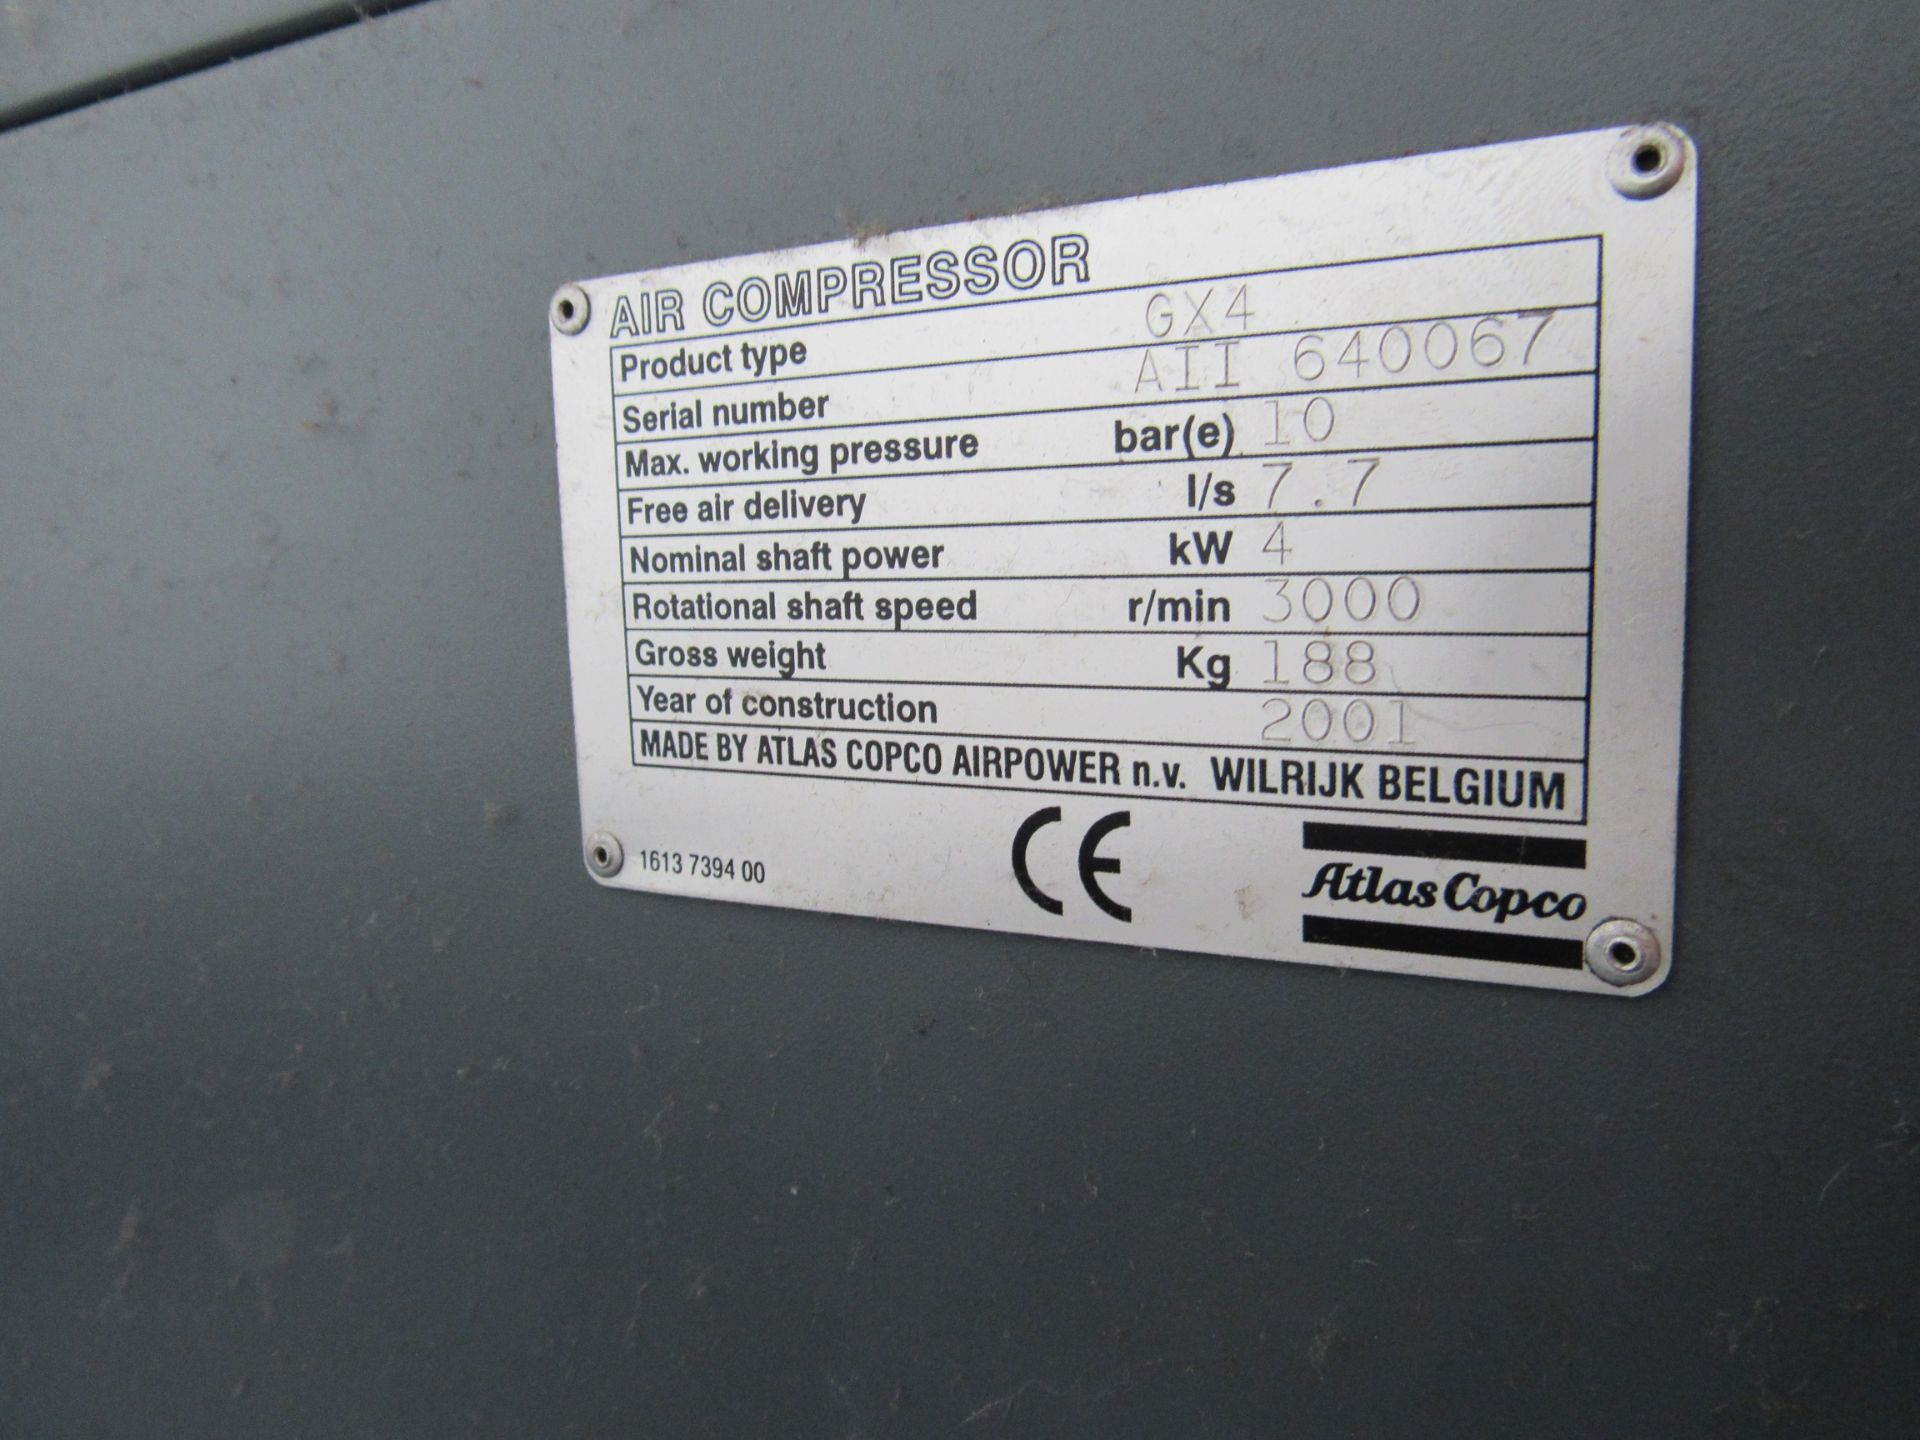 Atlas Copco GX4 Receiver Mounted Compressor, 7847 Hours, Serial Number AII 640067, 2001 - Image 4 of 5